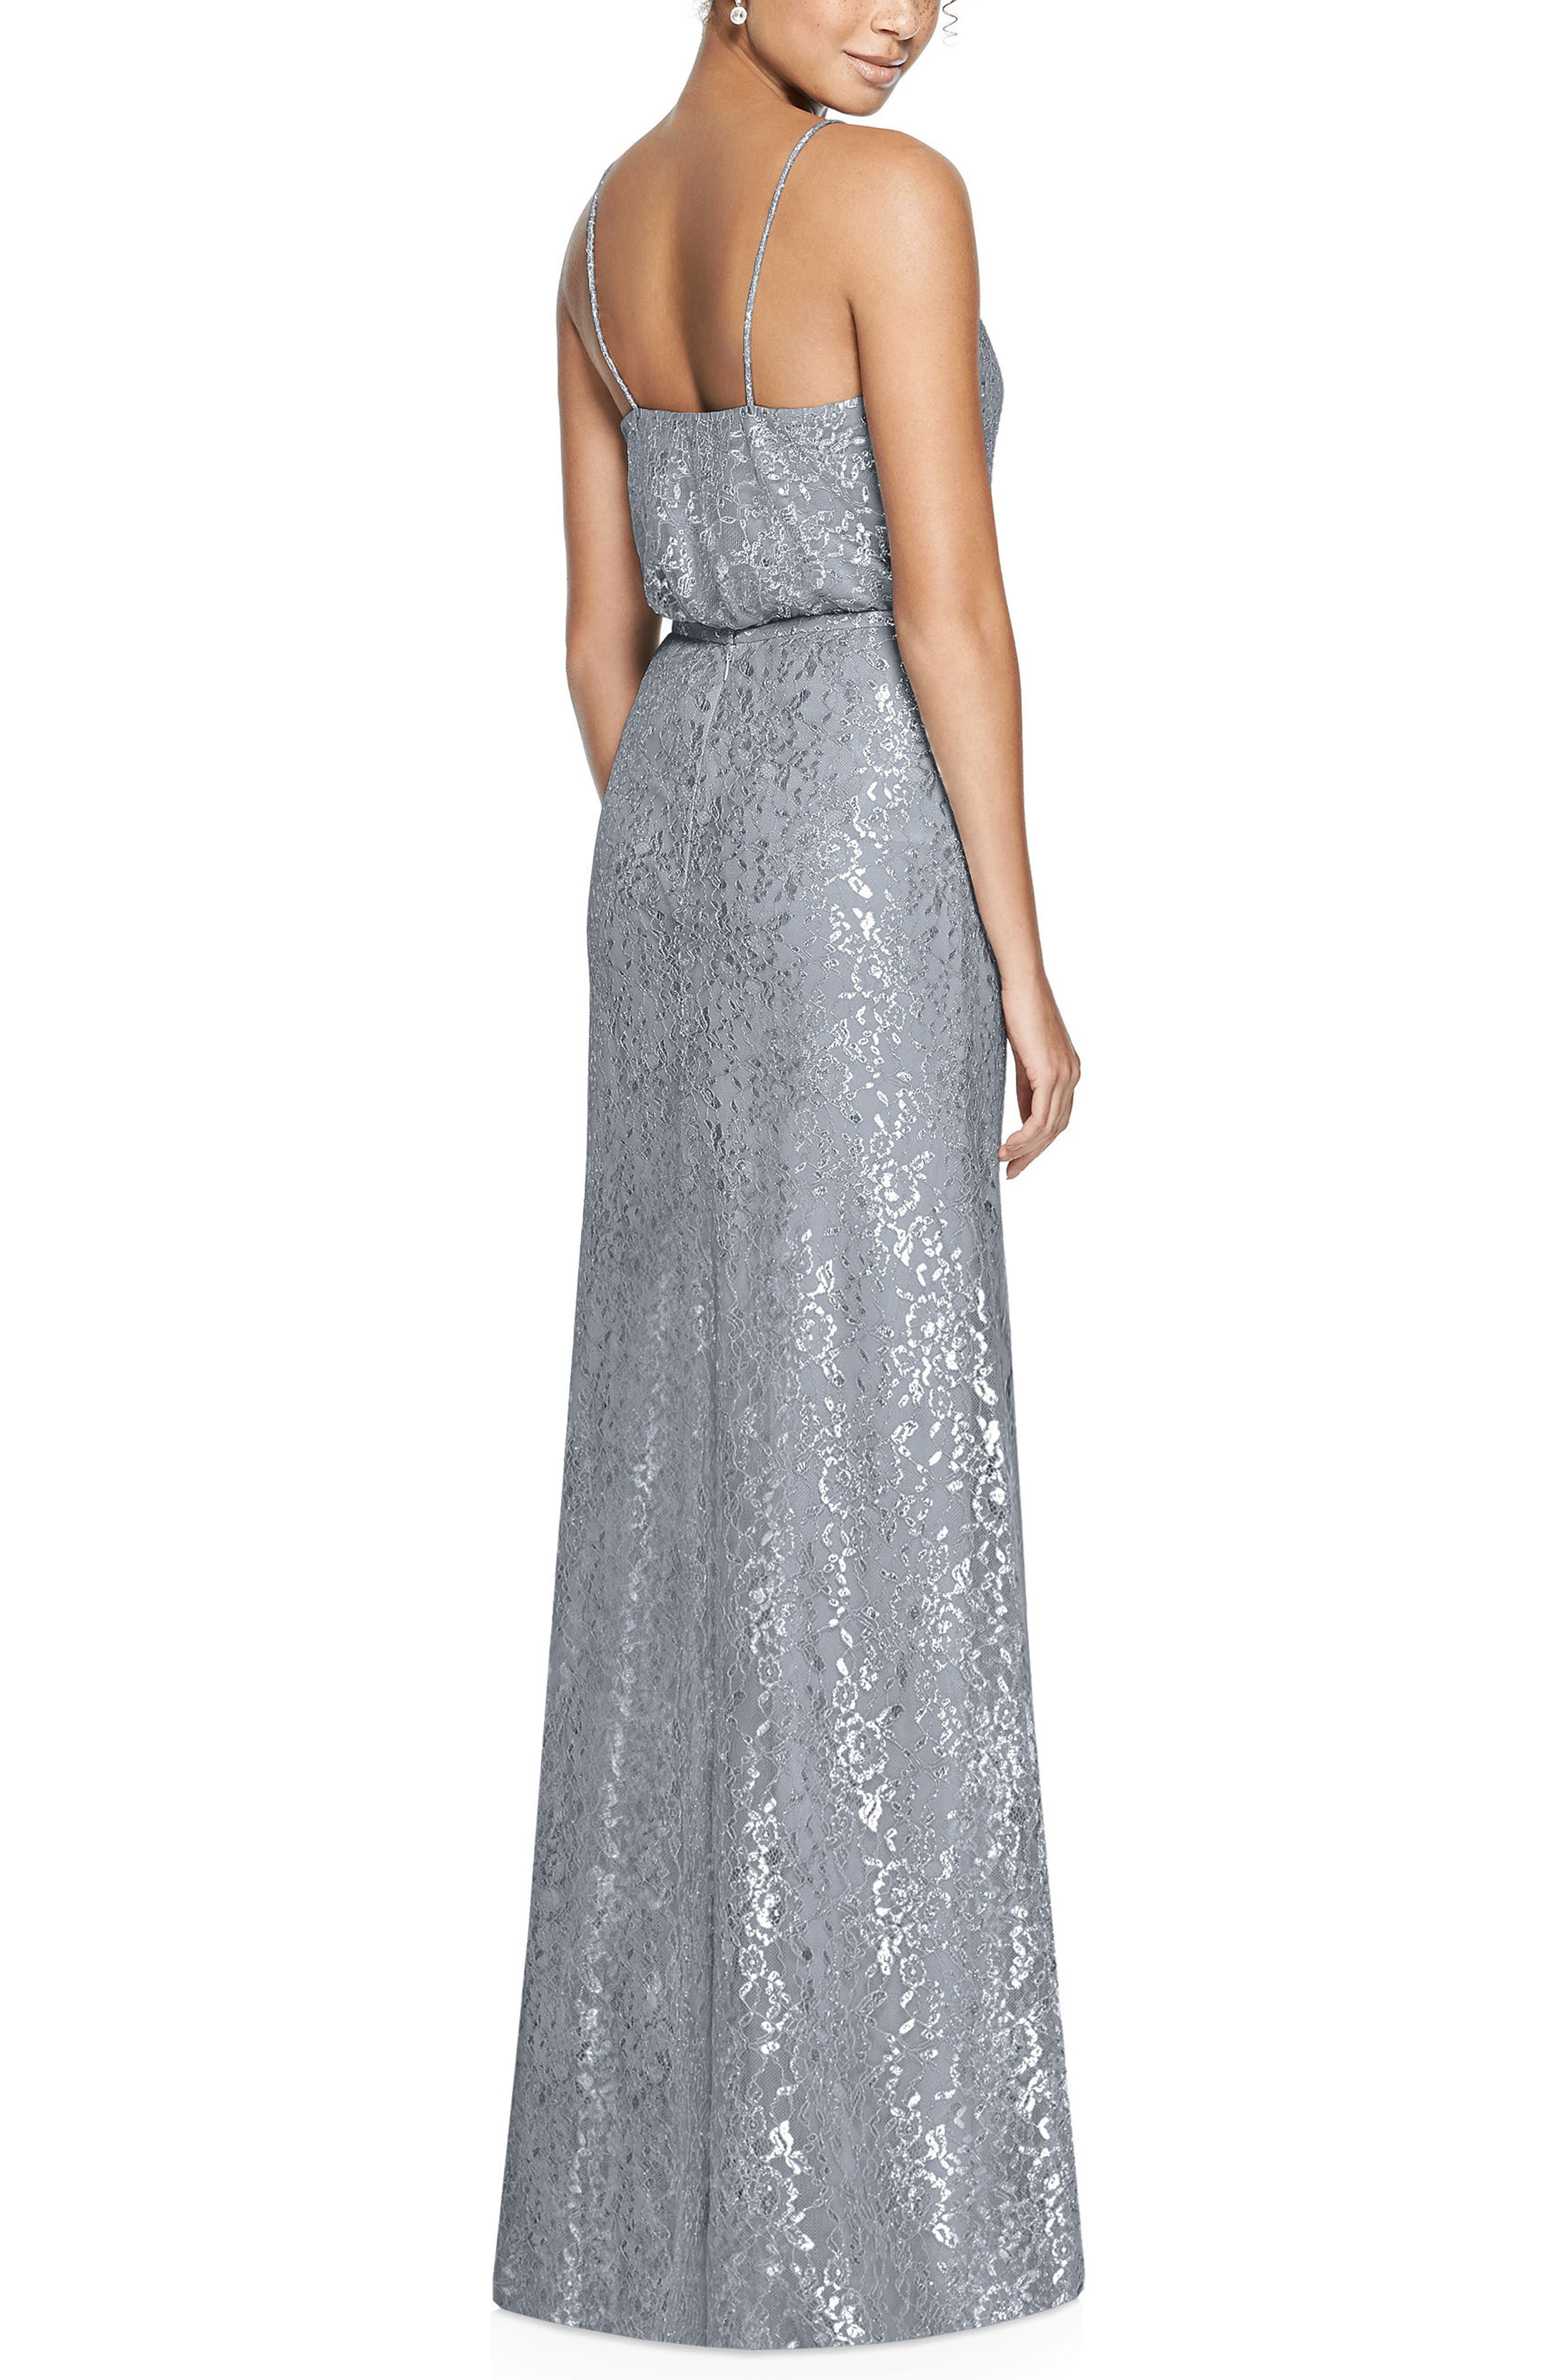 Metallic Lace Two-Piece Gown,                             Alternate thumbnail 2, color,                             PLATINUM